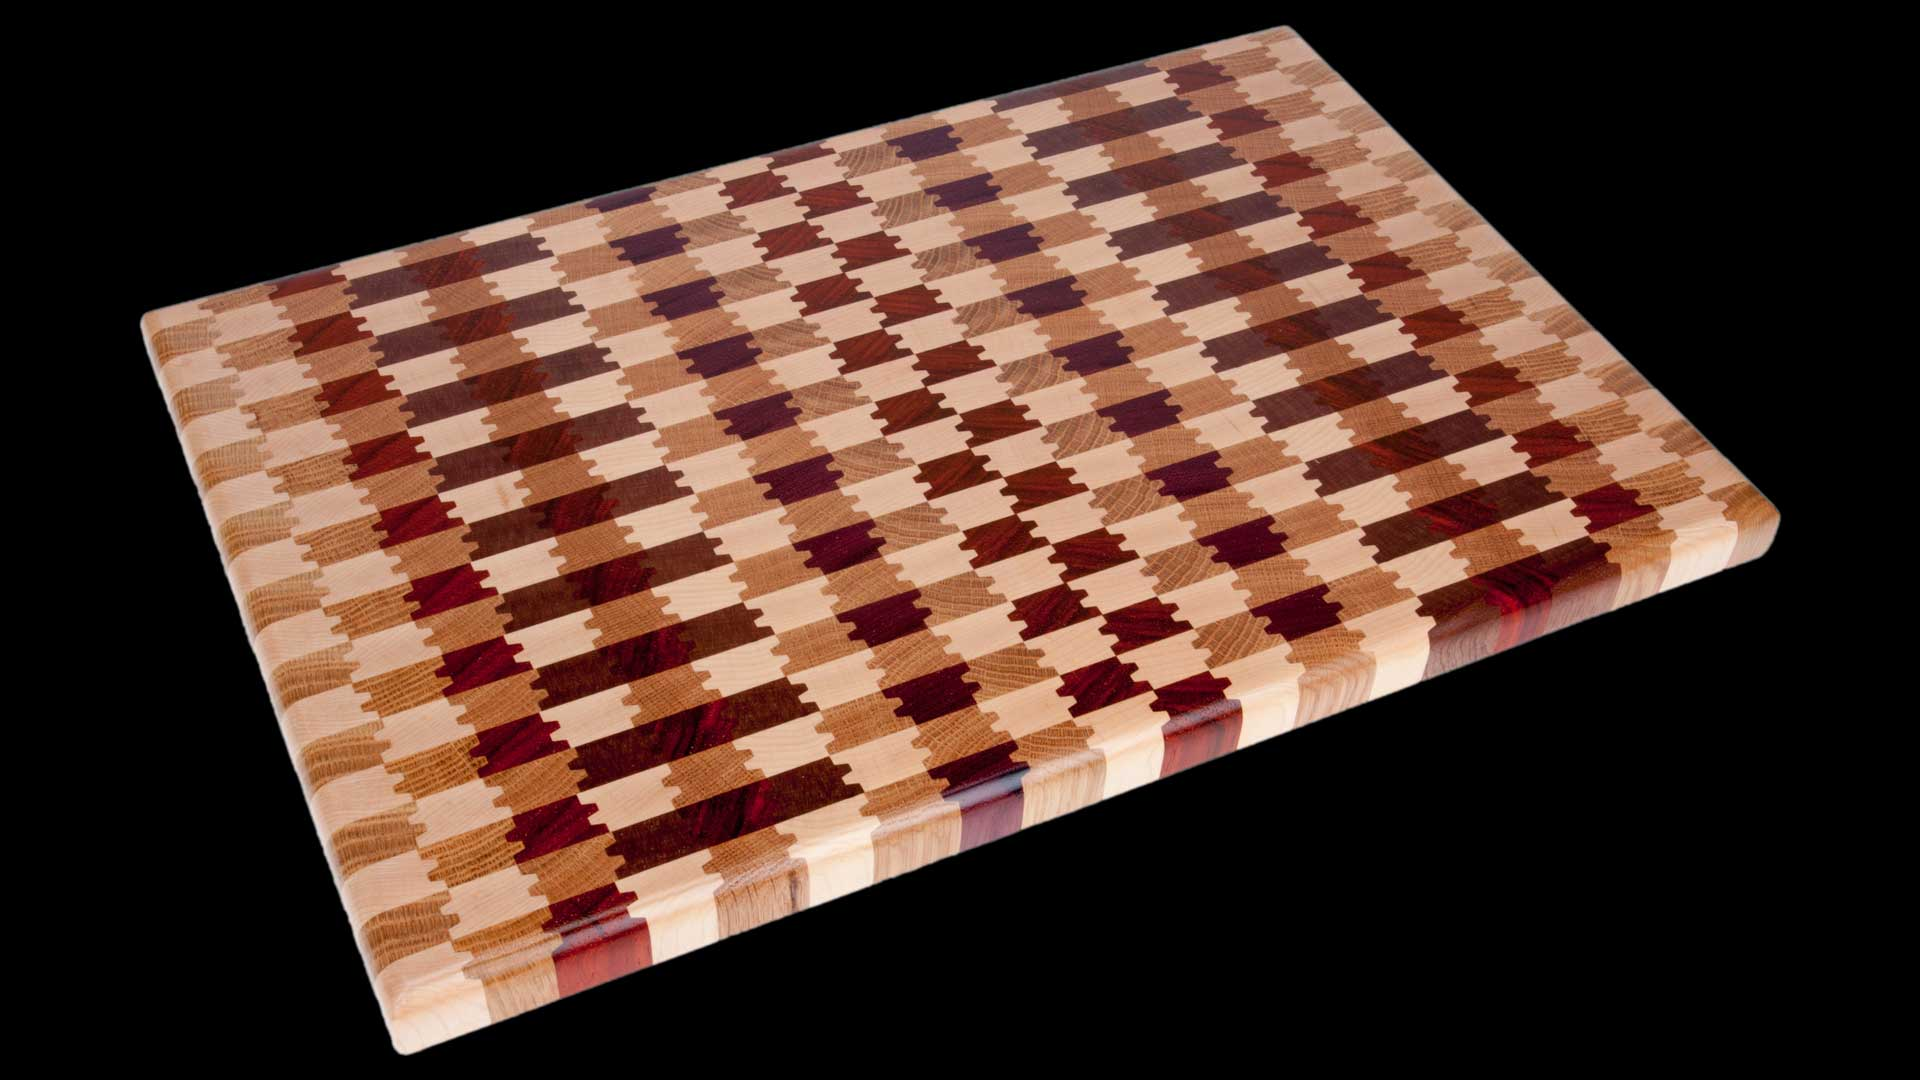 End Grain Wood Cutting Board Parallax